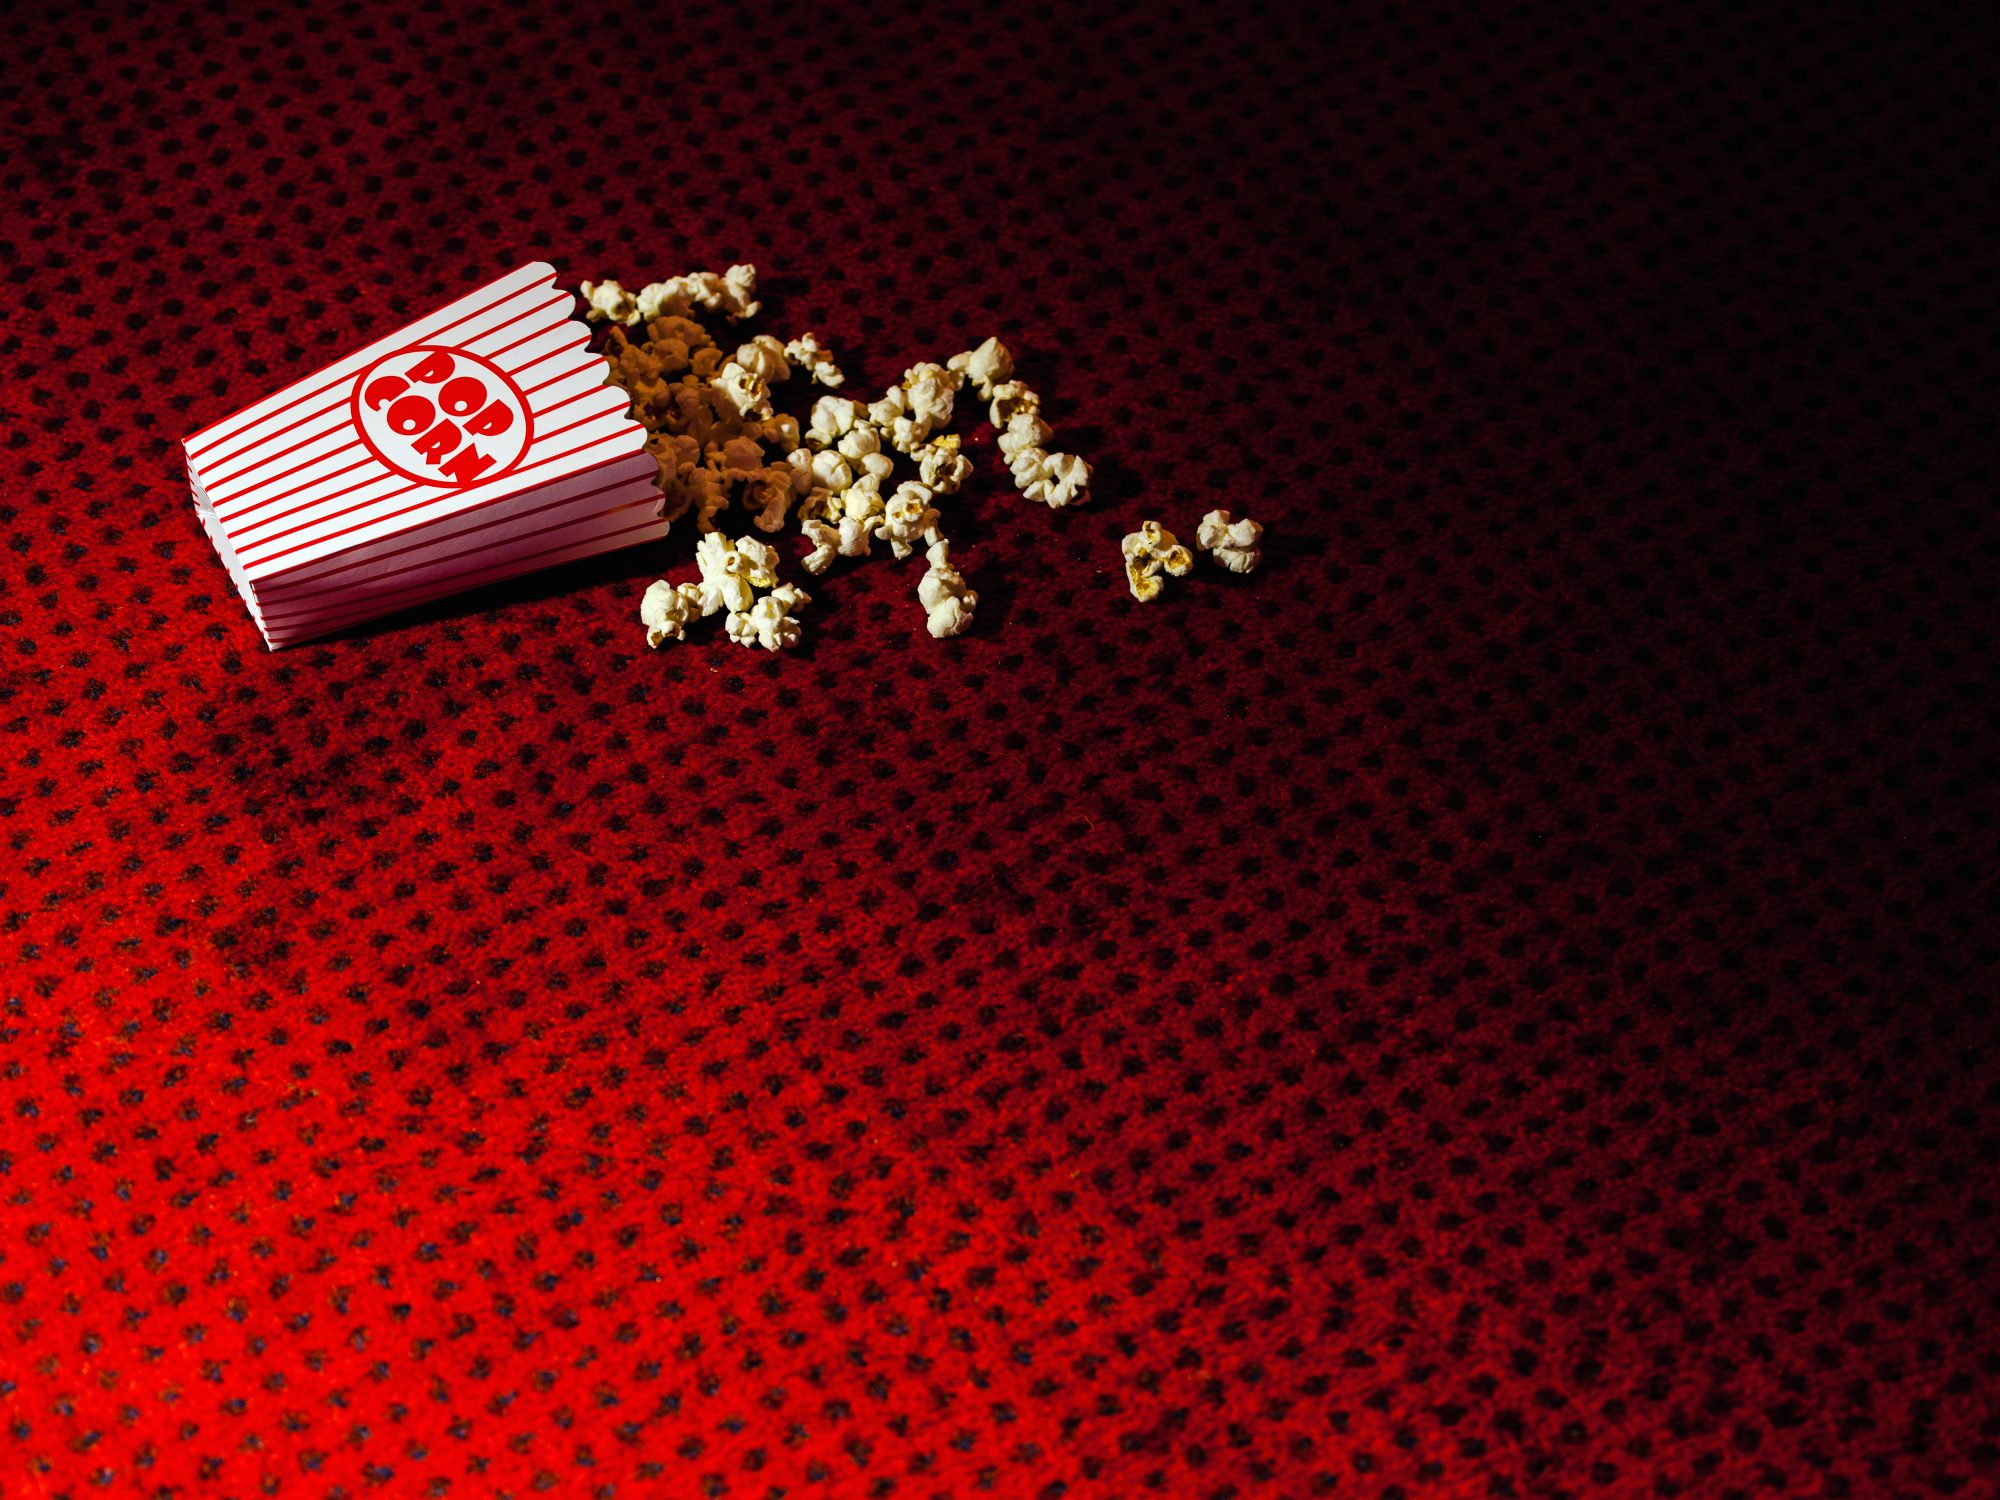 Fallen Popcorn on Movie Theater Floor